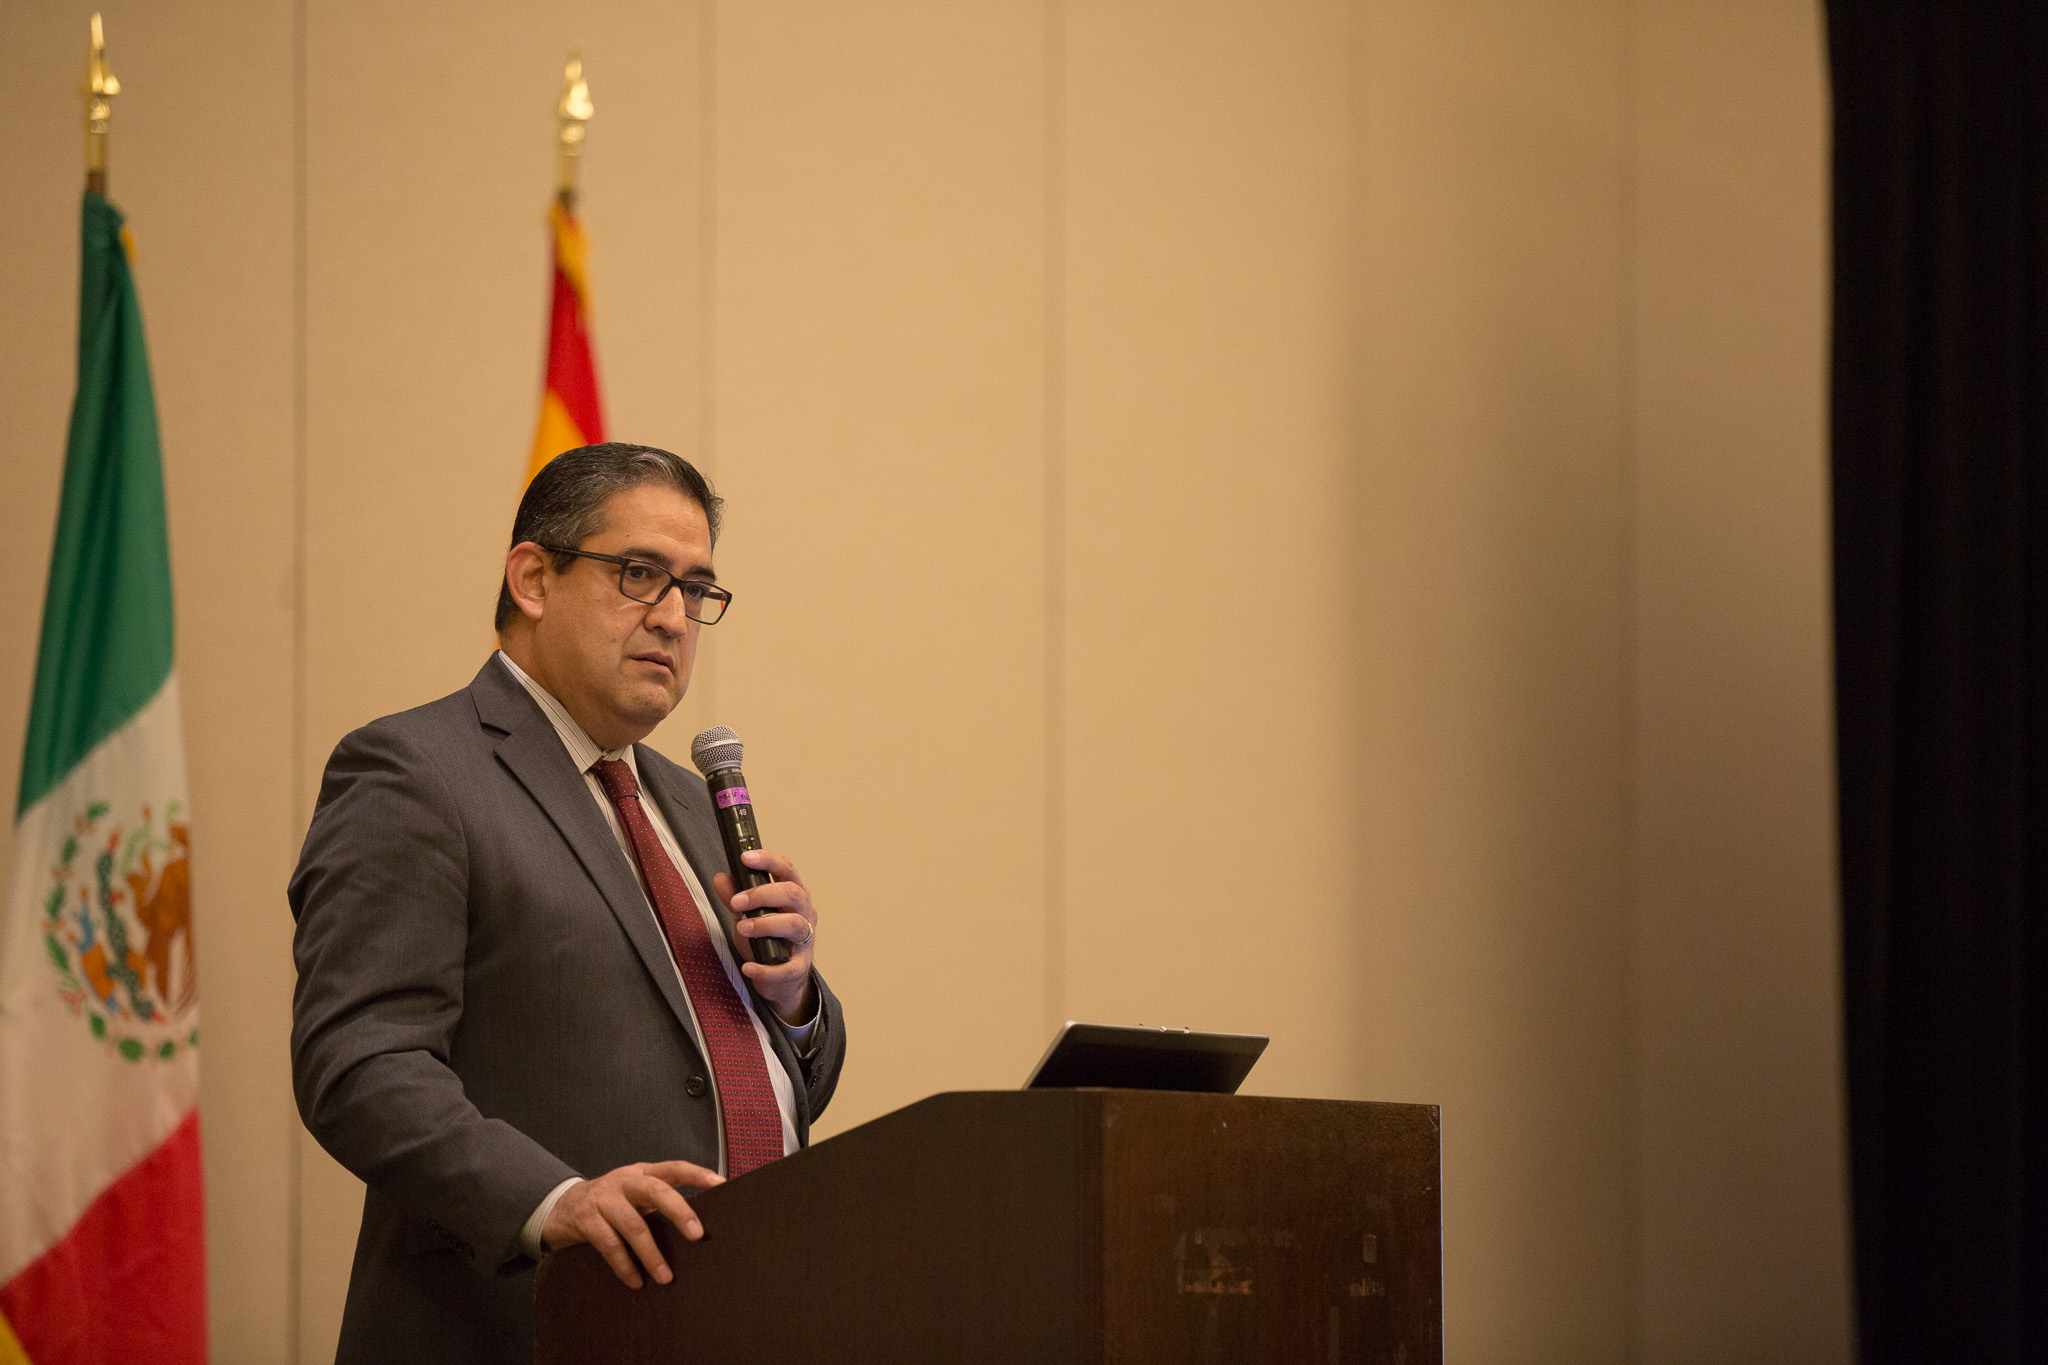 Bexar County Executive Director of Economic Development David Marquez introduces Leila Afas to the stage.